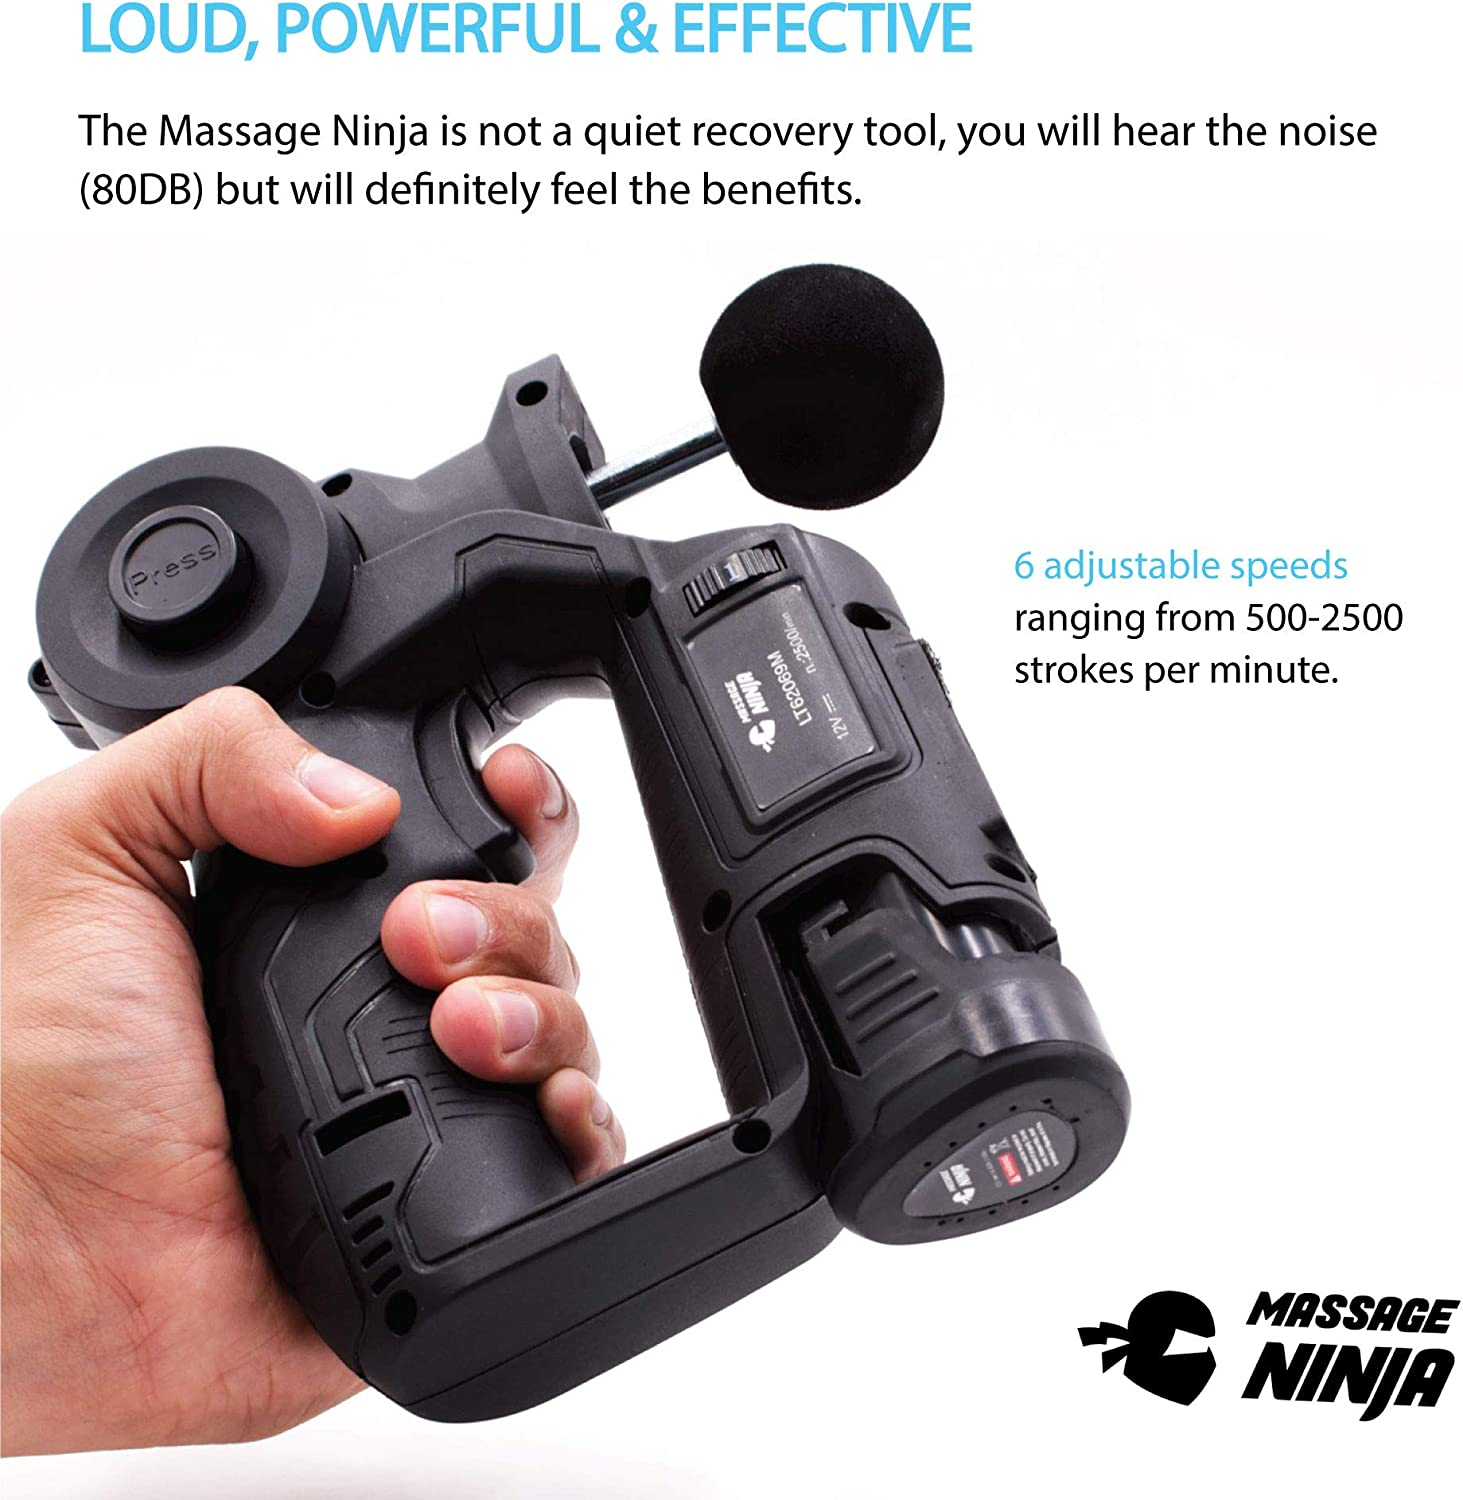 Shogun Sports Massage Ninja. Handheld Percussion Massager for Pain Relief and Improved Range of Motion. Fully Adjustable Massage Gun with 4 ...